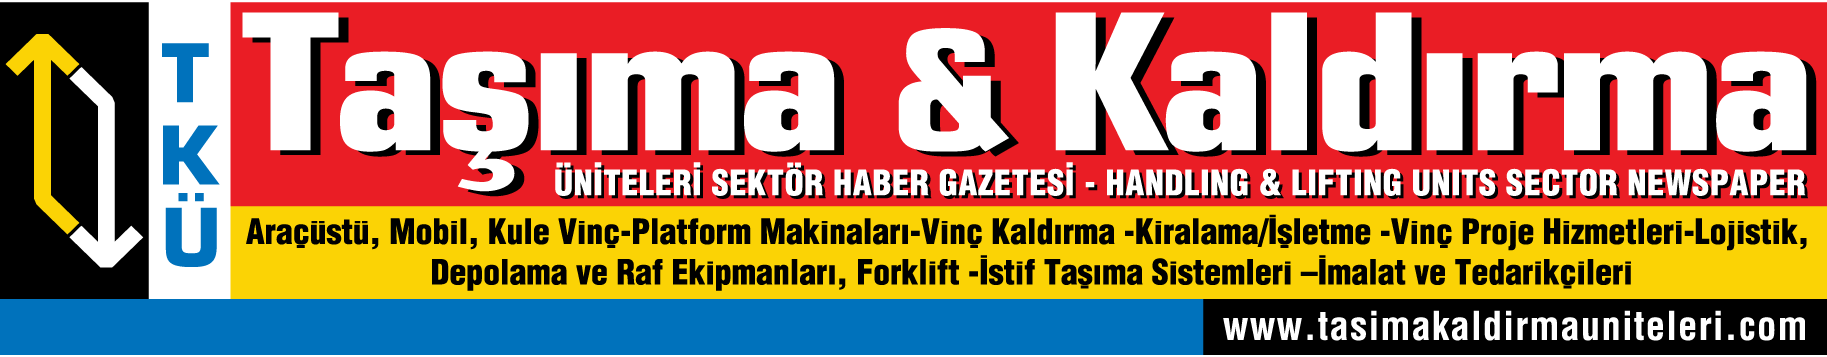 ELS LİFT'TEN BELARUS TESLİMATI